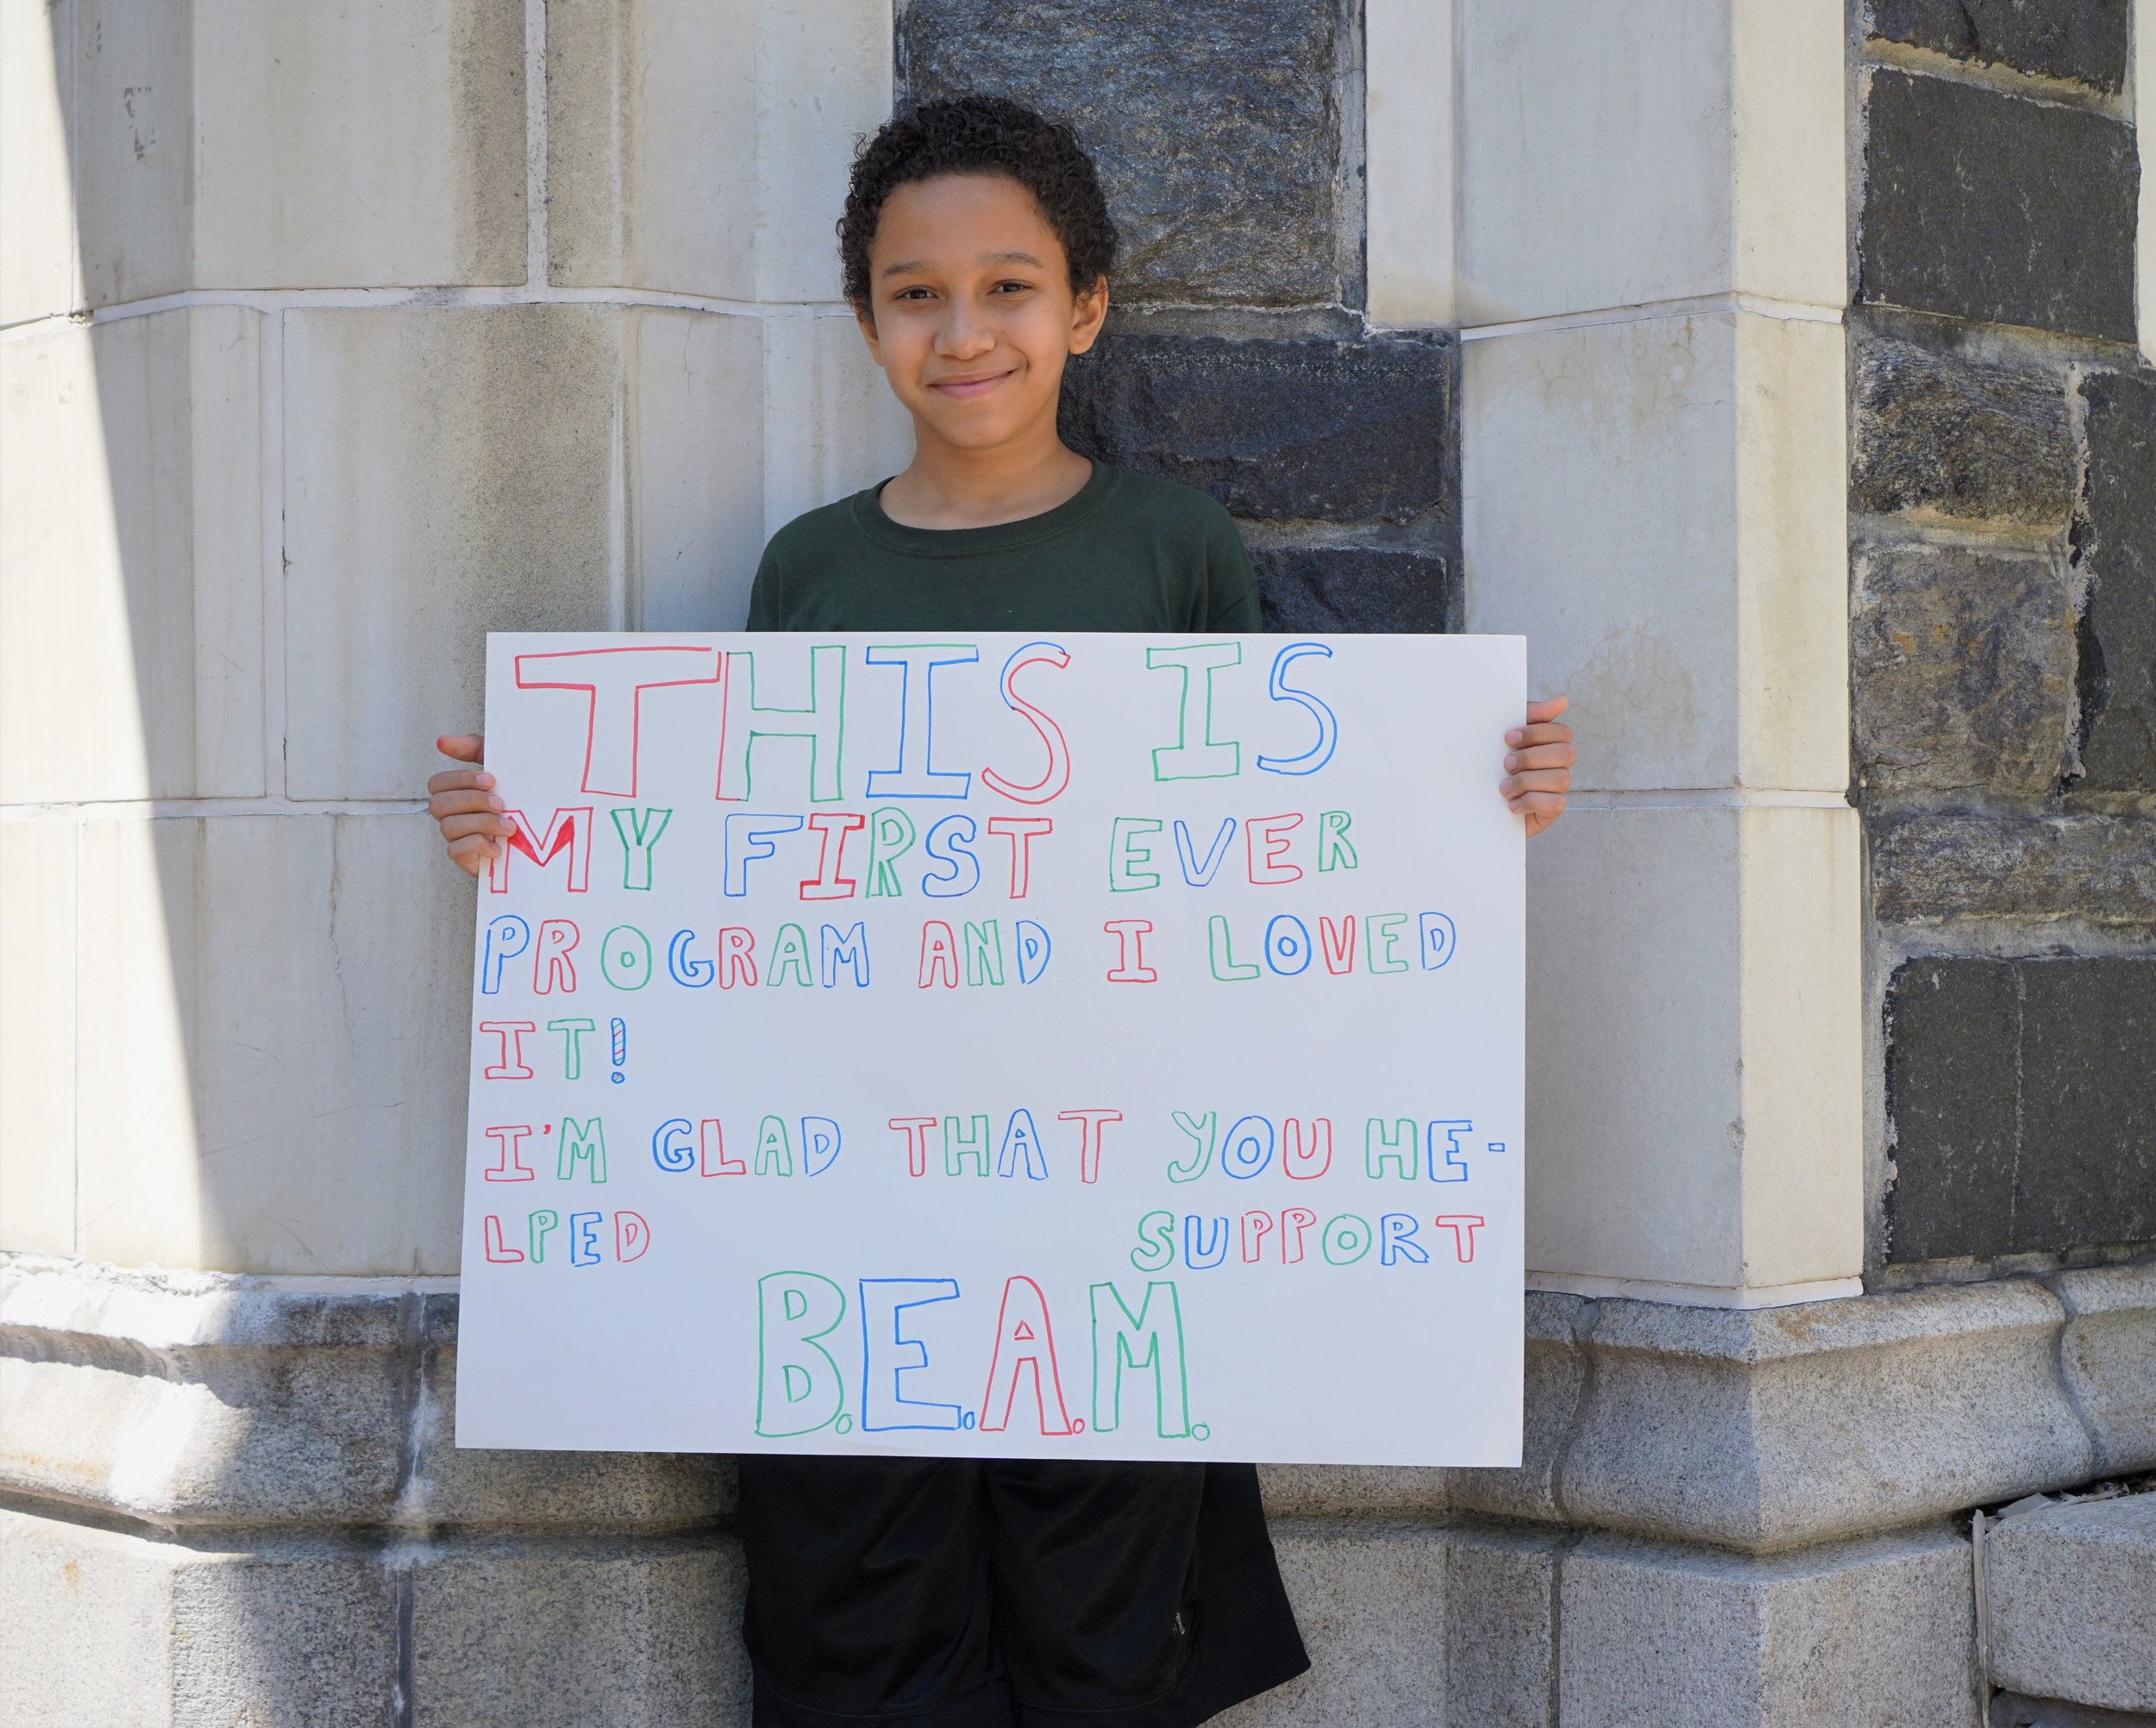 """This is my first ever program and I loved it! I'm glad that you helped support BEAM."" —Hayden, BEAM Discovery"